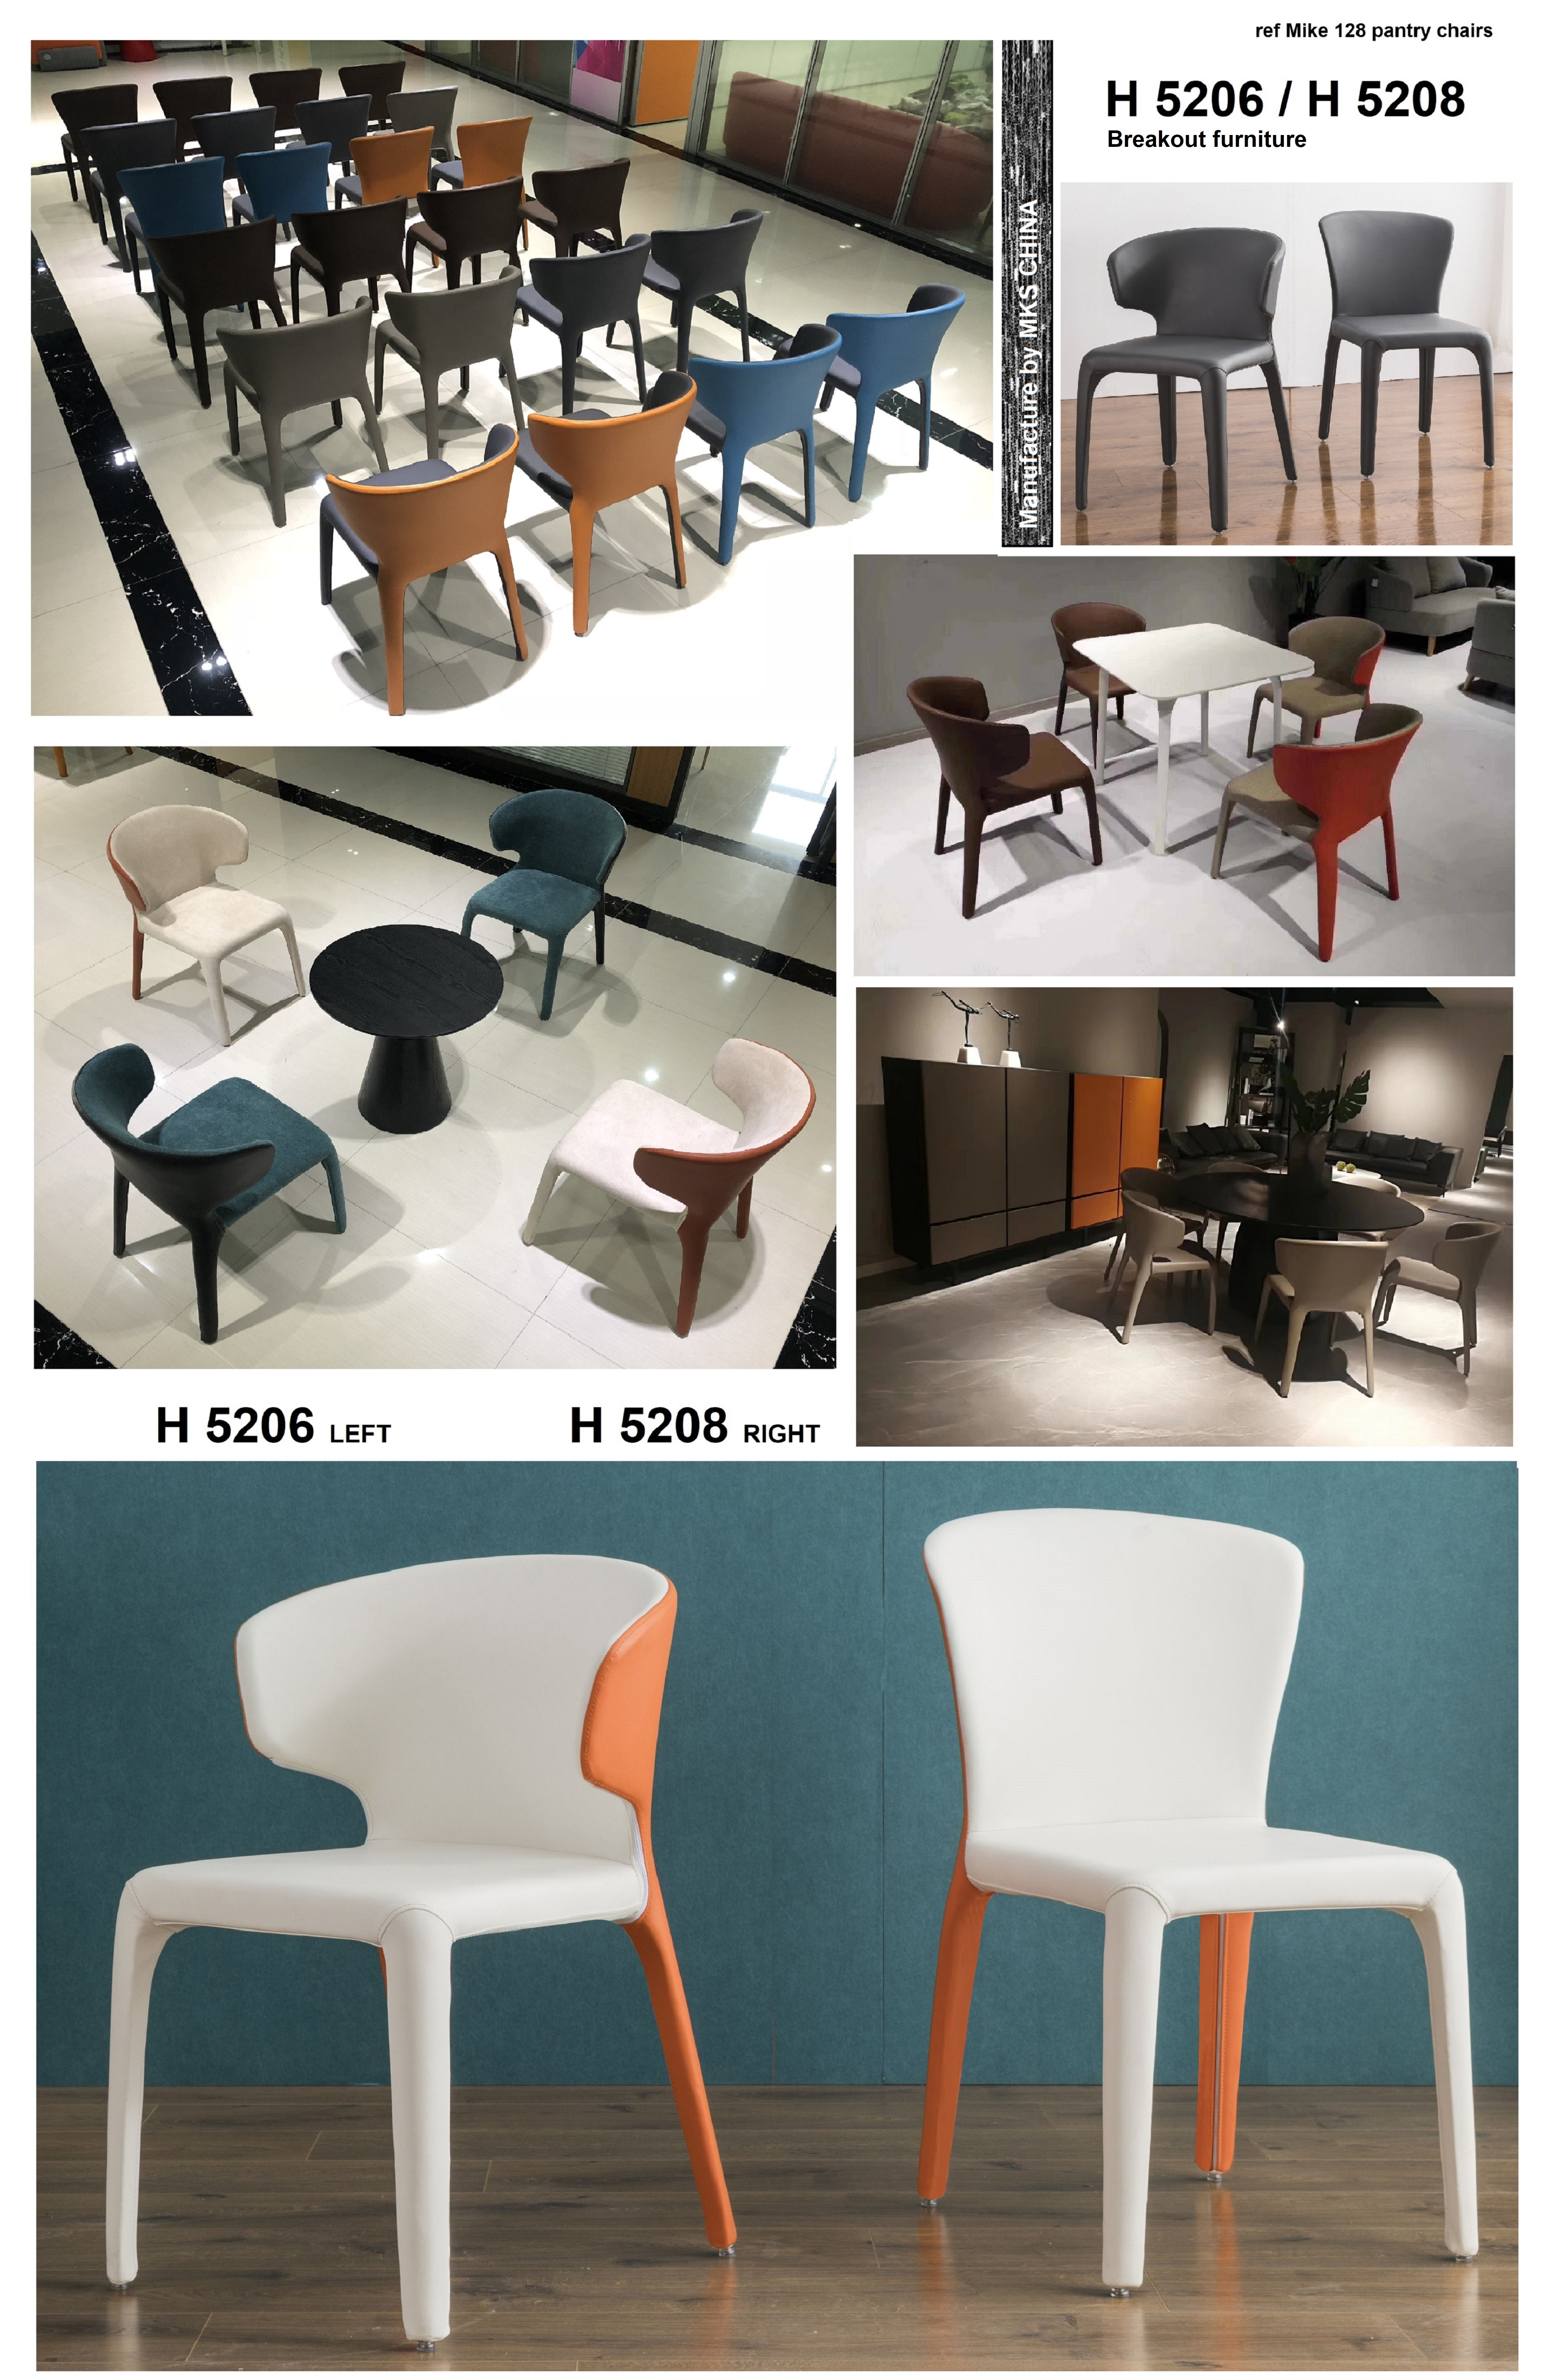 H 5206 H 5208 pantry chairs.jpg